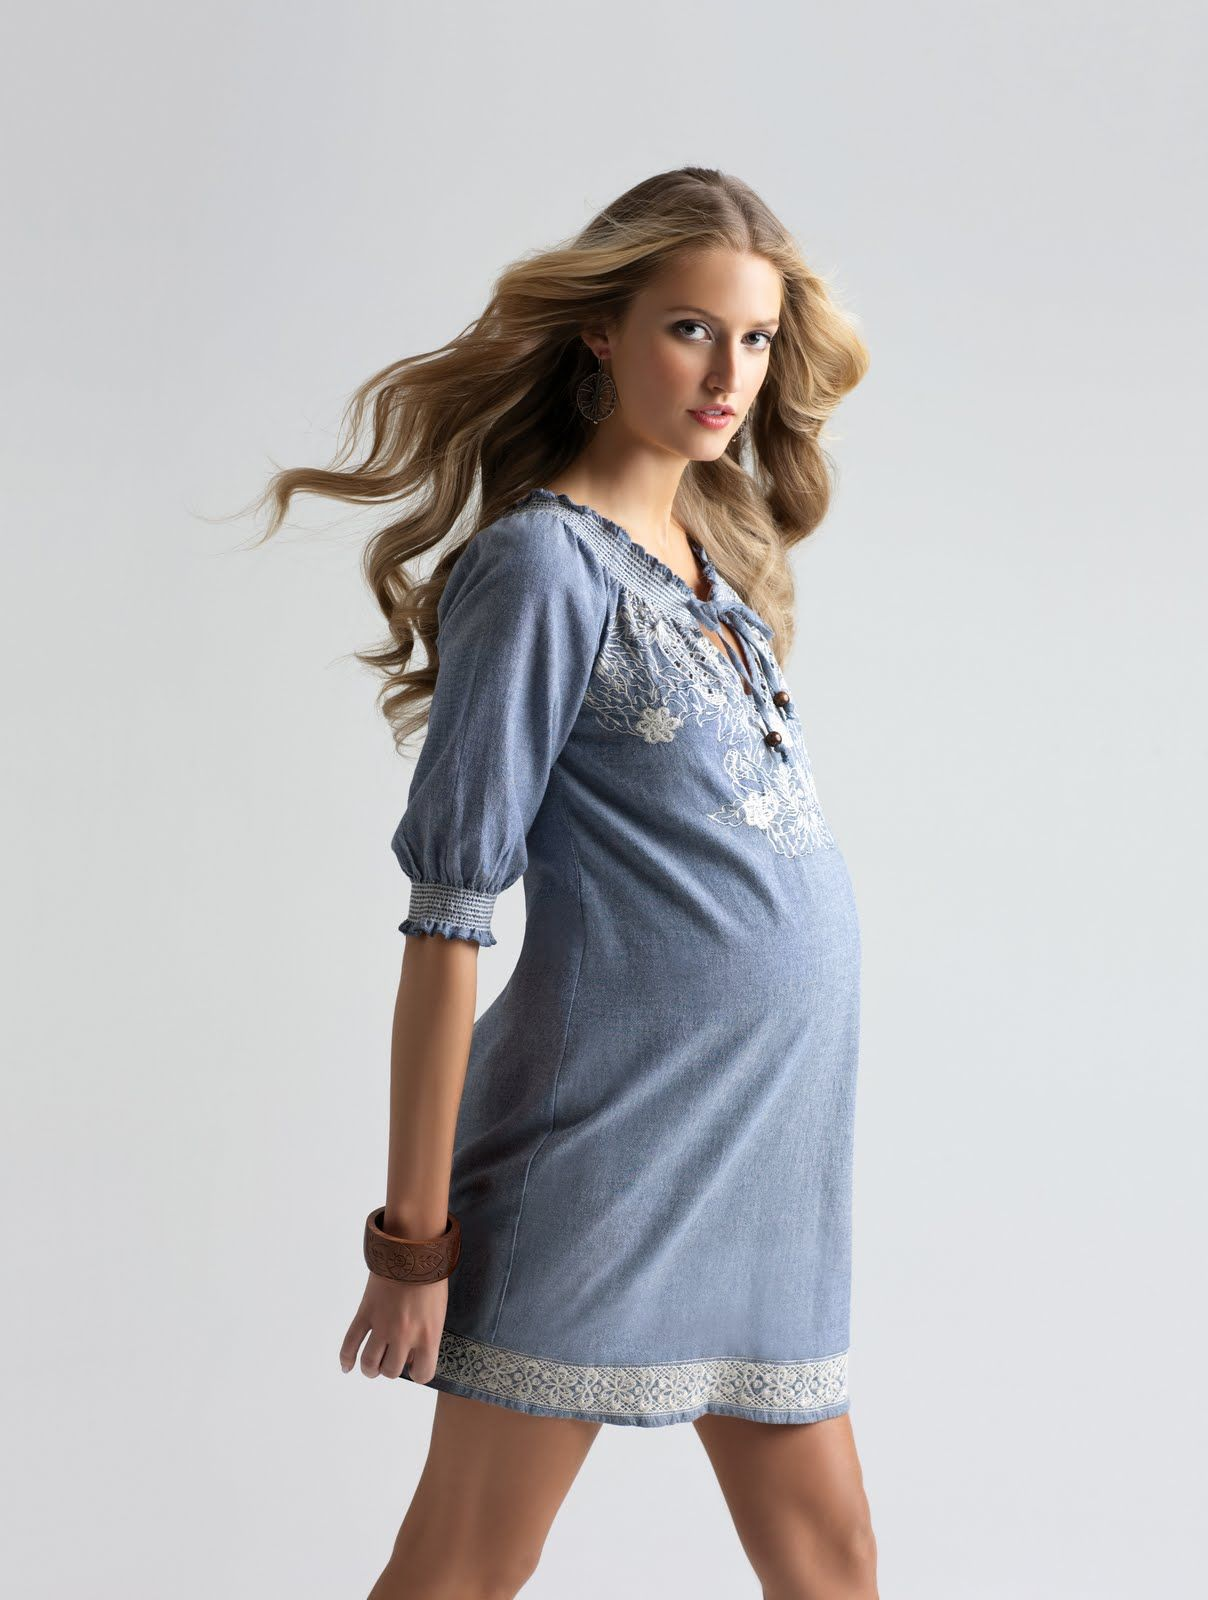 Pin by kathy nelson on pregnancy style pinterest mothers maternity dresses ombrellifo Gallery